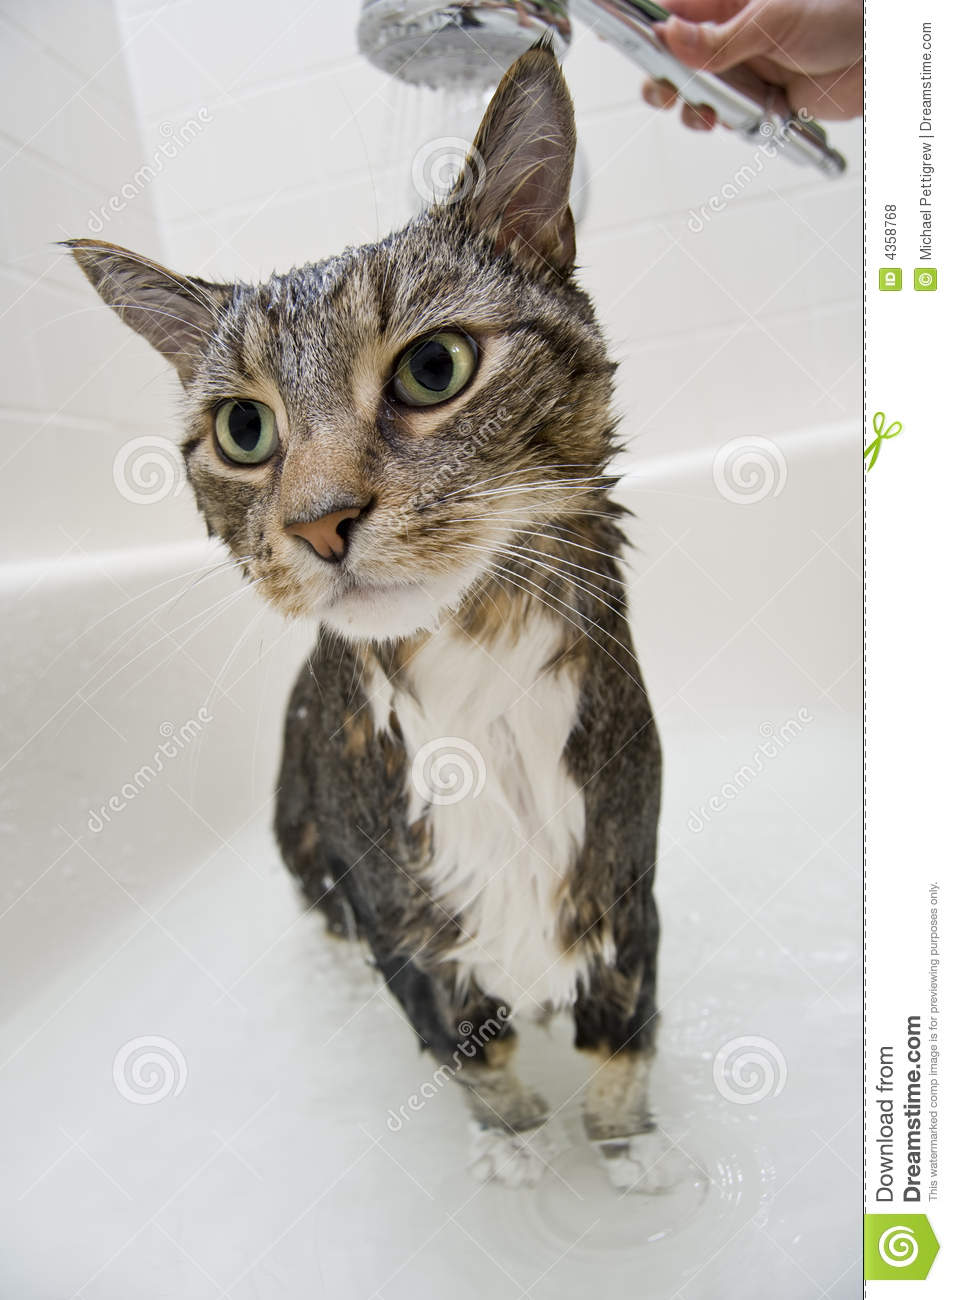 Cat In The Shower Royalty Free Stock Photos - Image: 4358768